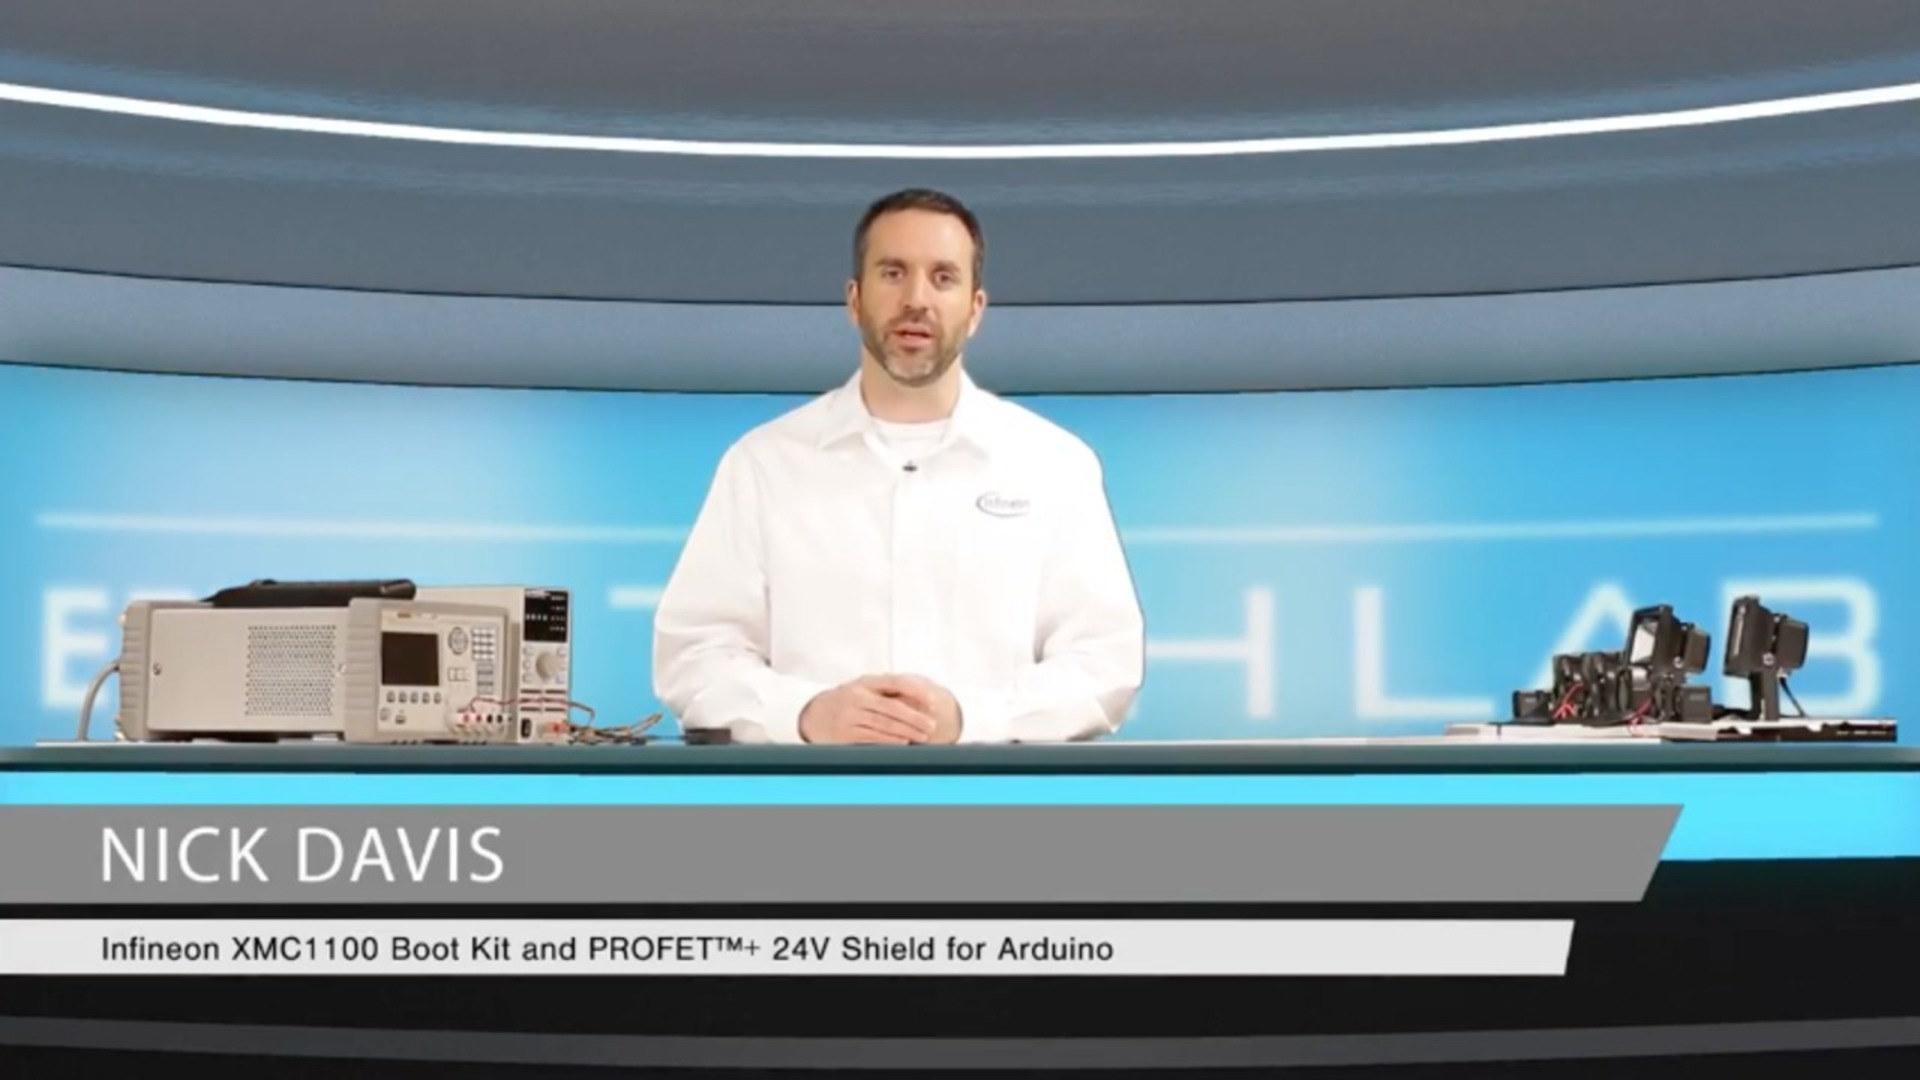 Watch to learn more: Infineon XMC1100 Boot Kit and PROFET™+ 24V Shield for Arduino – Part 2